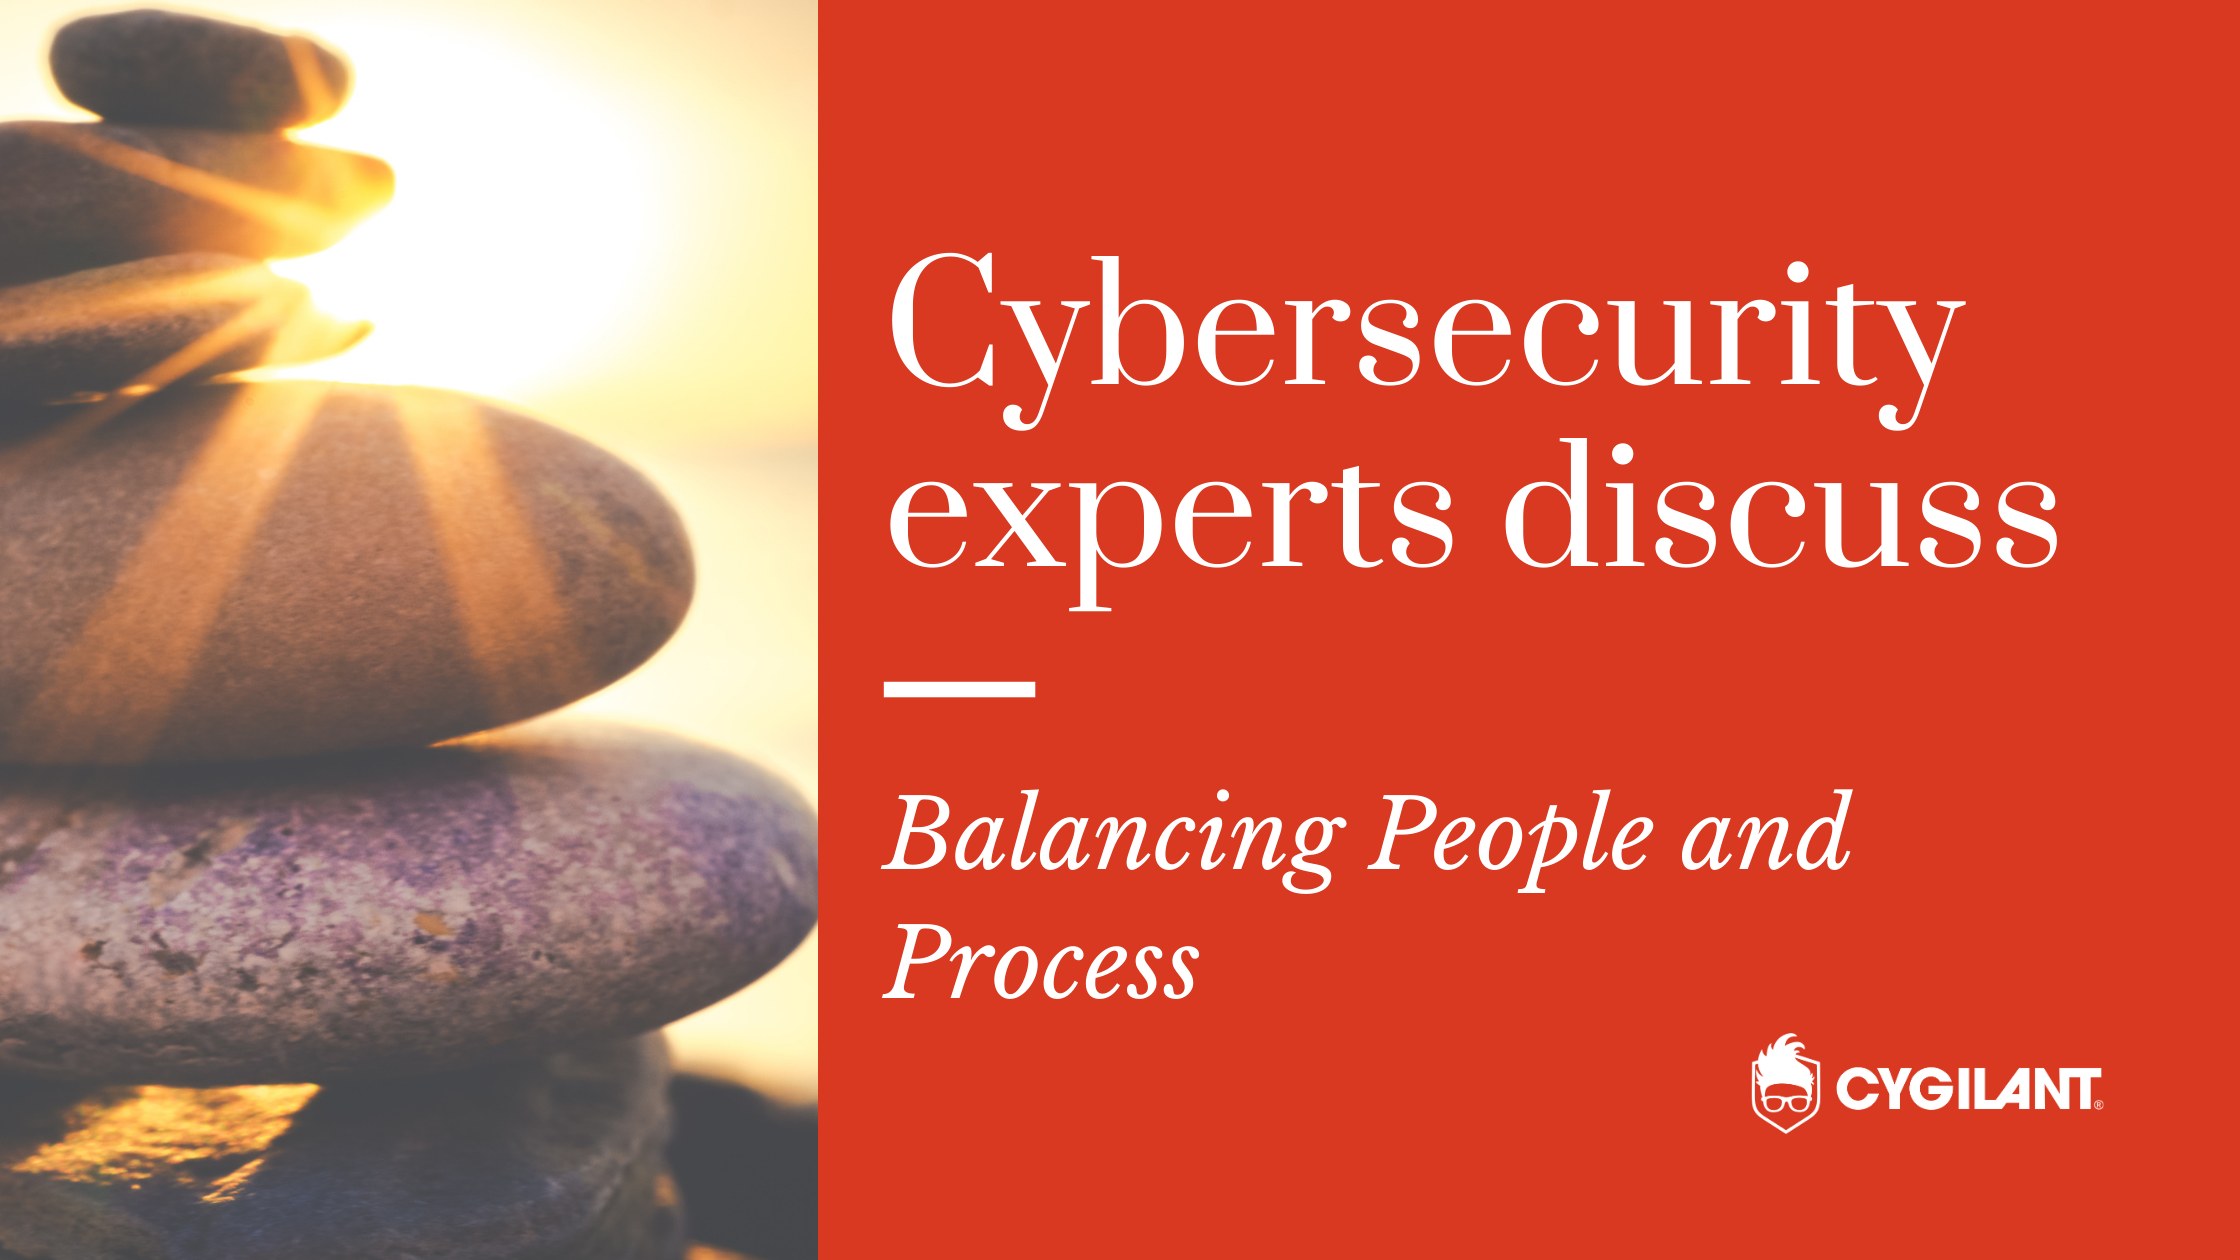 Cybersecurity Experts Discuss: Balancing People and Process